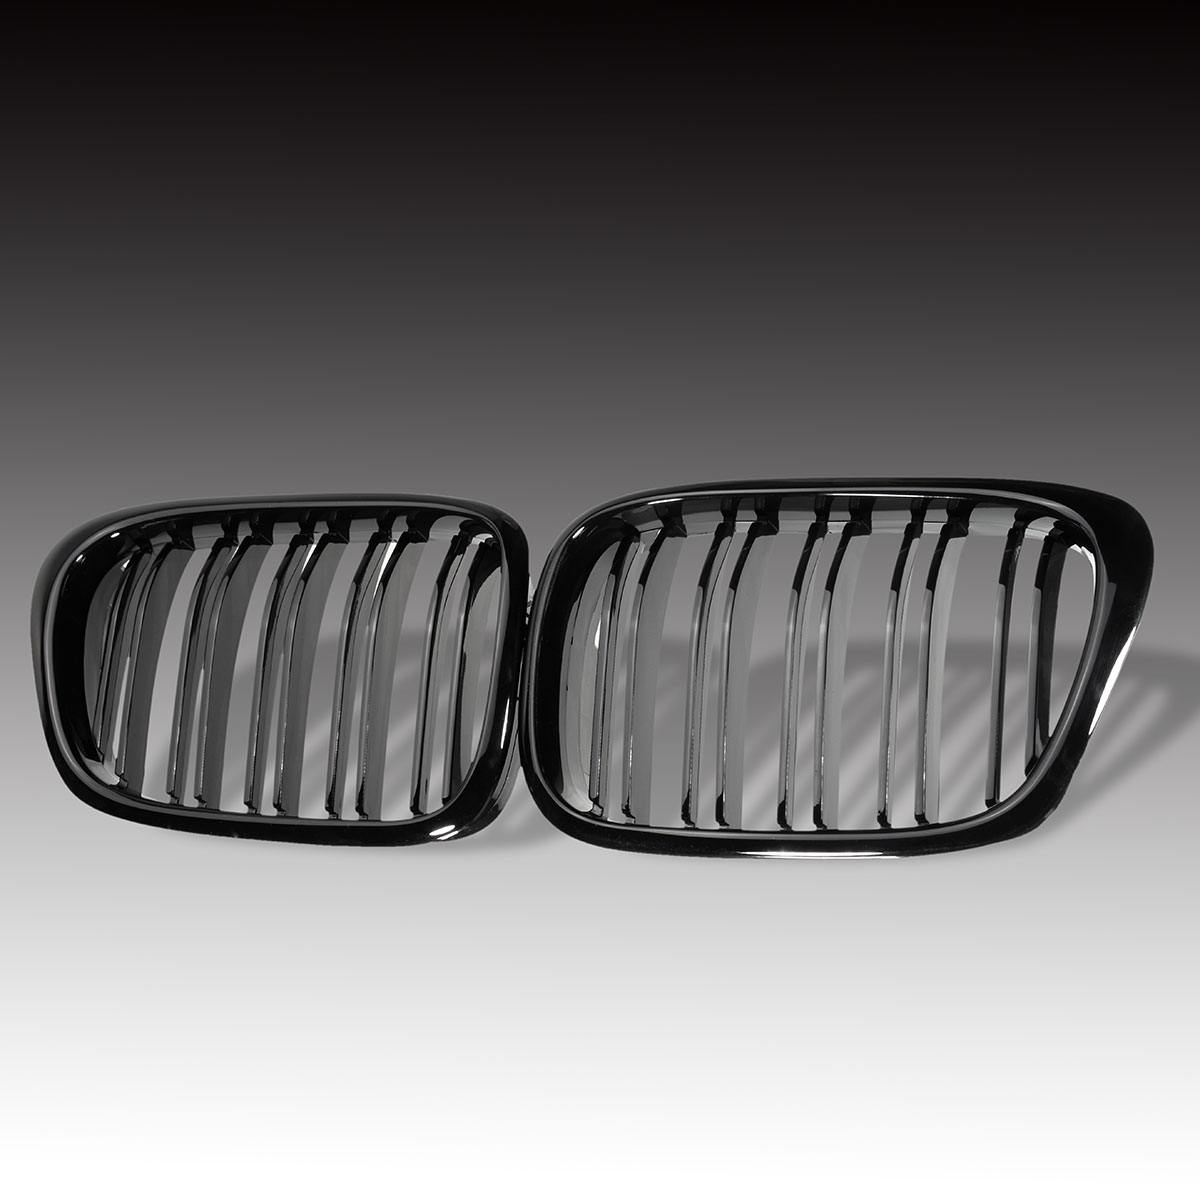 Pair Gloss Black Auto Front Kidney Grille Grilles For BMW E39 M5 5 Series 525i 528i 530i 540i 1995-1999 2000 2001 2002 2004